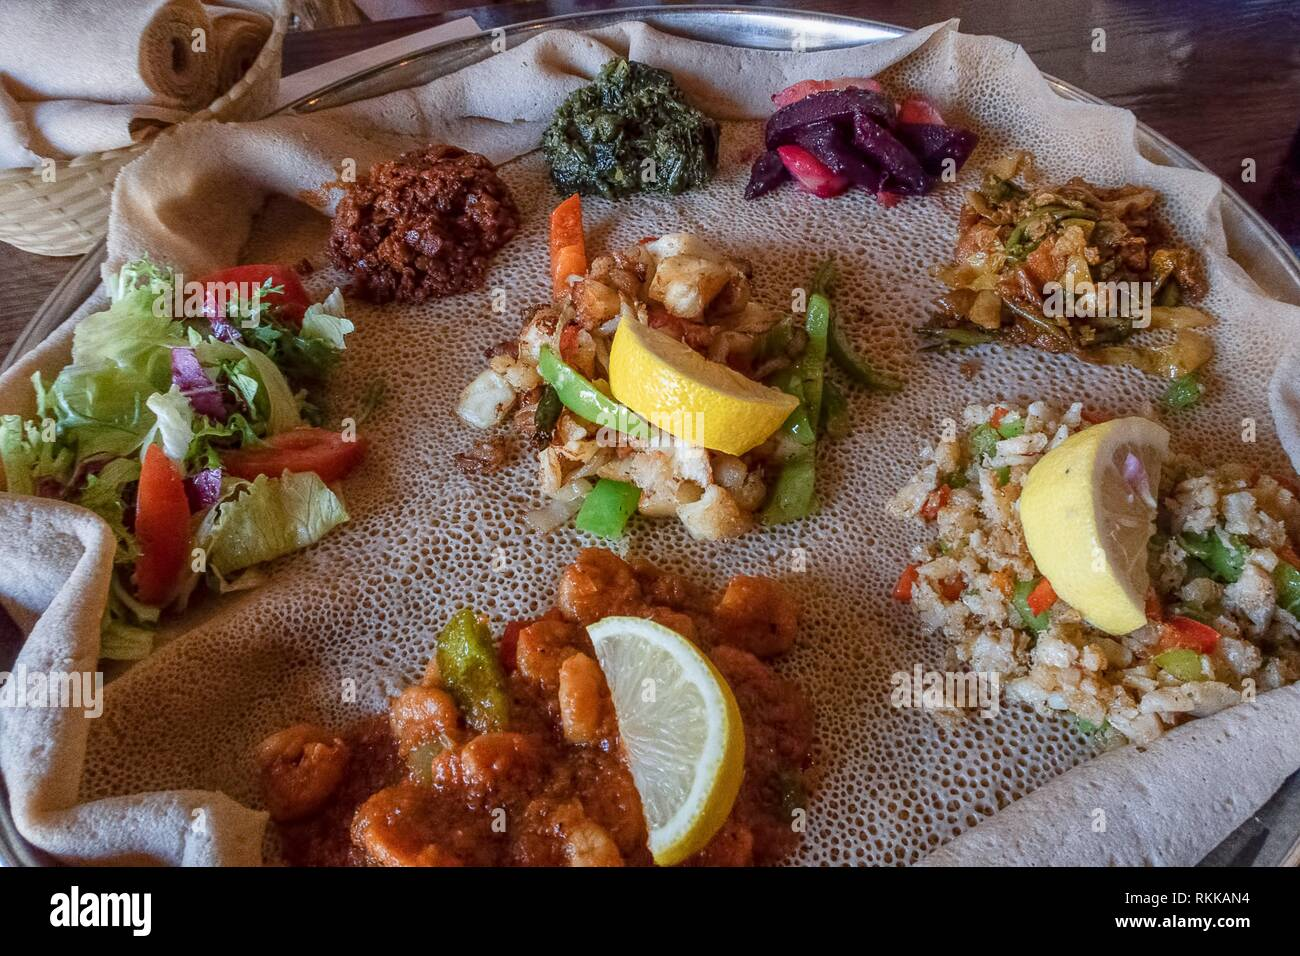 Injera is a sourdough flatbread made from teff flour. It is the national dish of Ethiopia, Eritrea, Somalia and Djibouti. - Stock Image